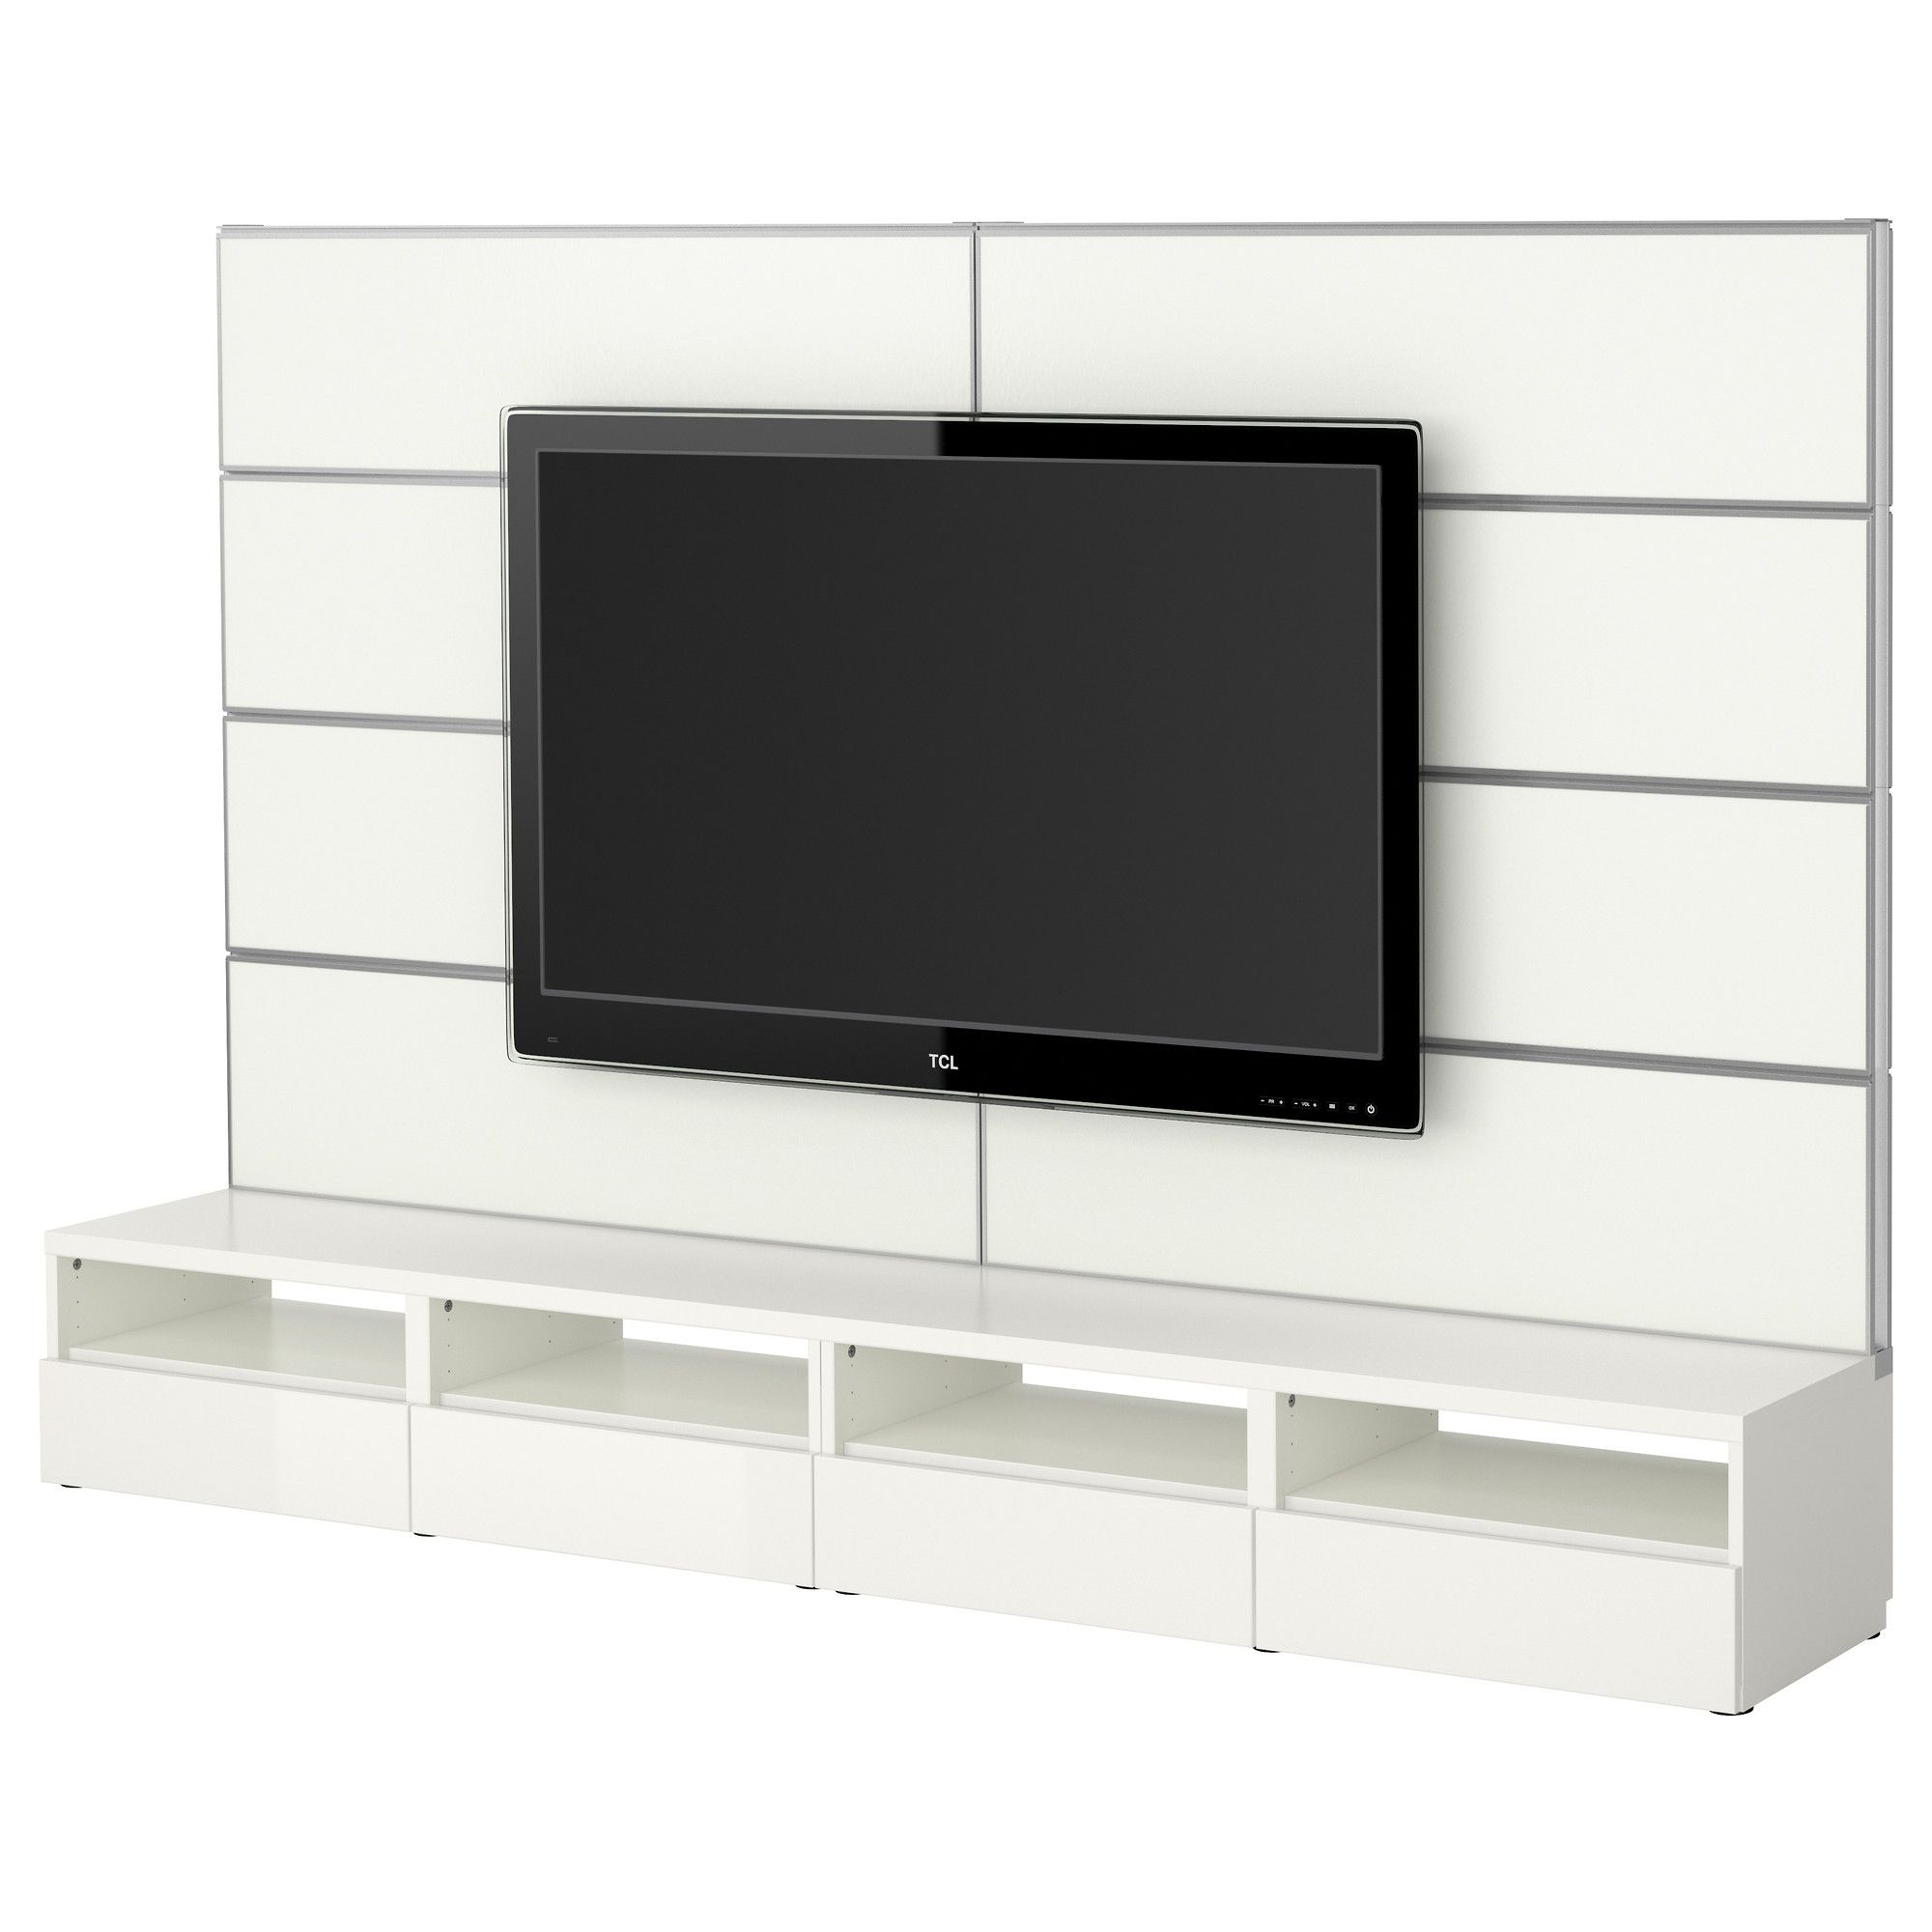 best framst tv storage combination white ikea apt pinterest tv storage storage and. Black Bedroom Furniture Sets. Home Design Ideas